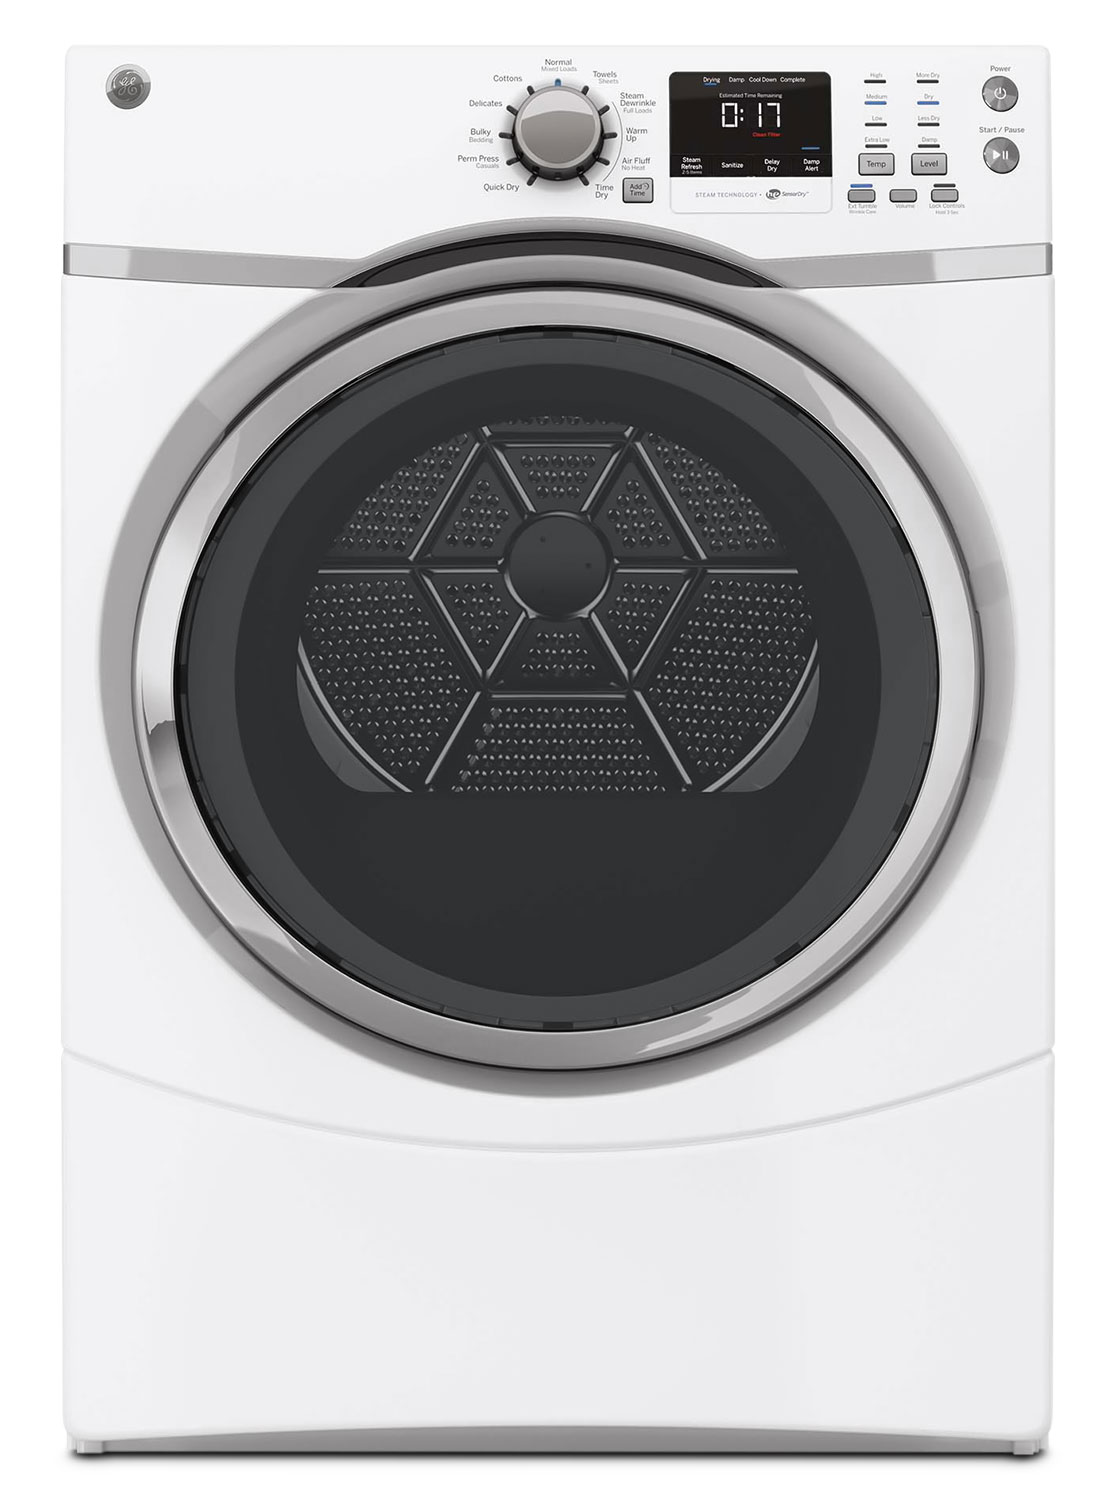 Washers and Dryers - GE 7.5 Cu. Ft. Electric Dryer – GFMS170EHWW